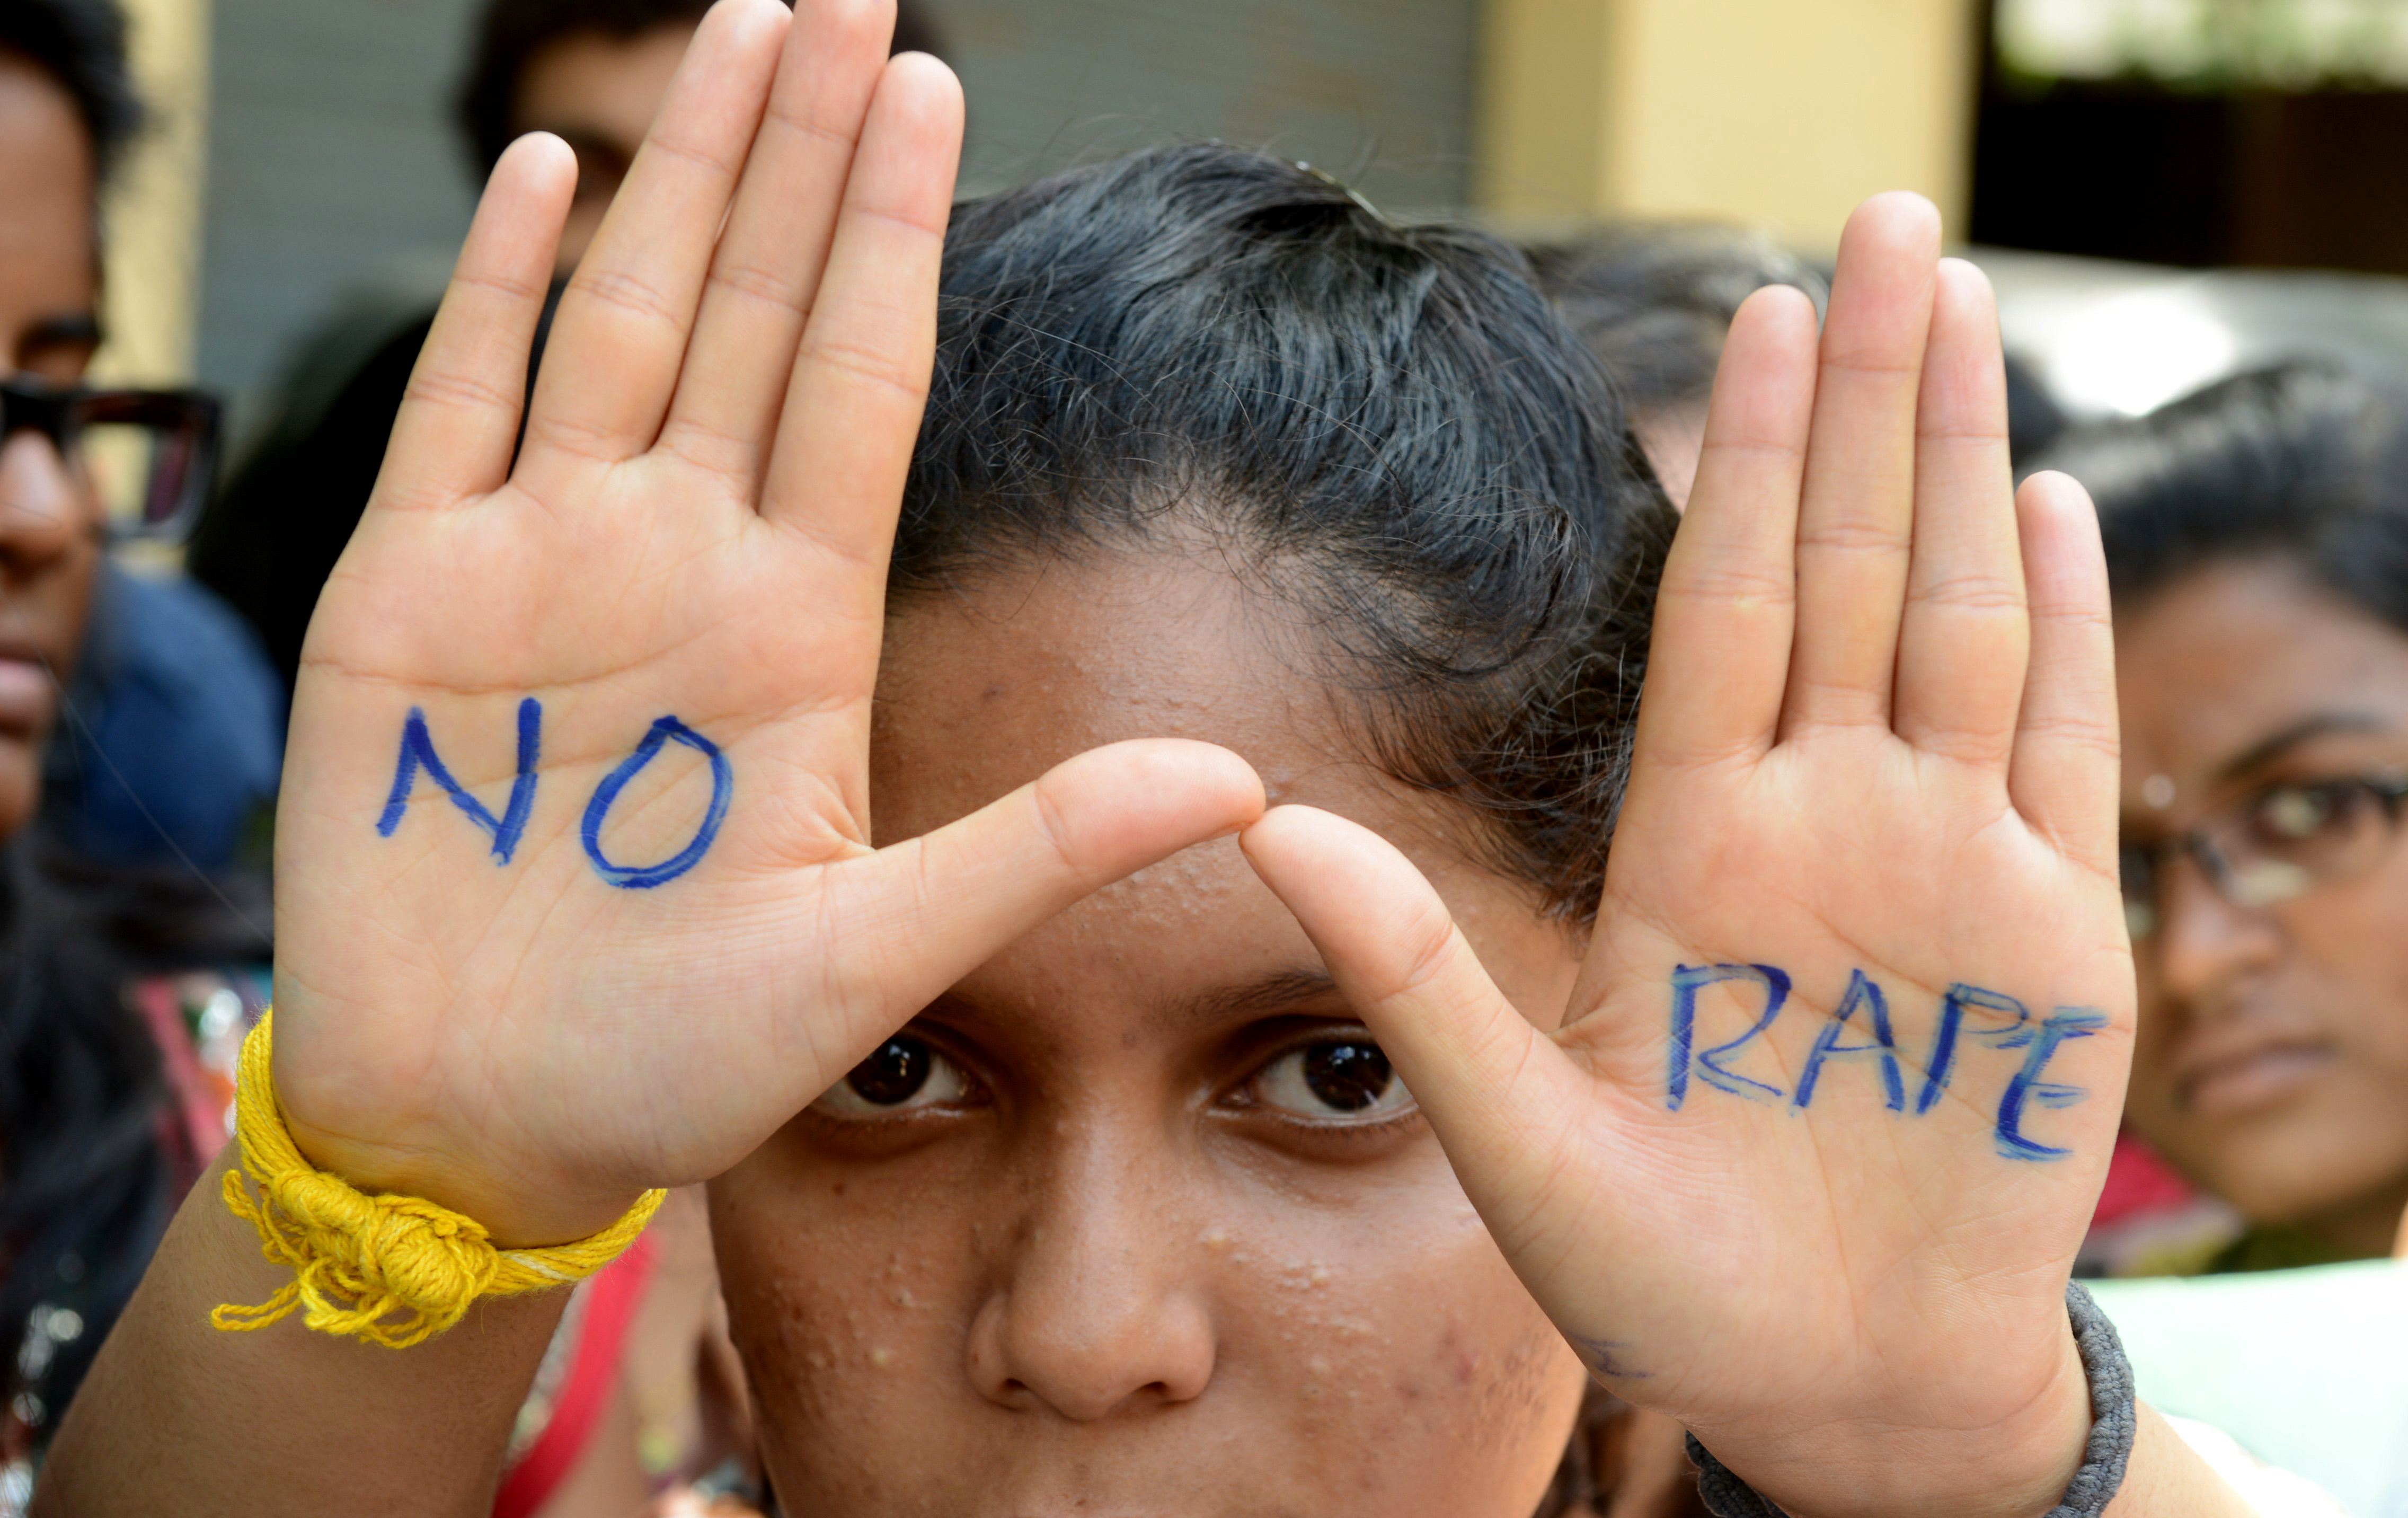 An anti-rape protest in India (Picture: Noah Seelam/AFP/Getty)